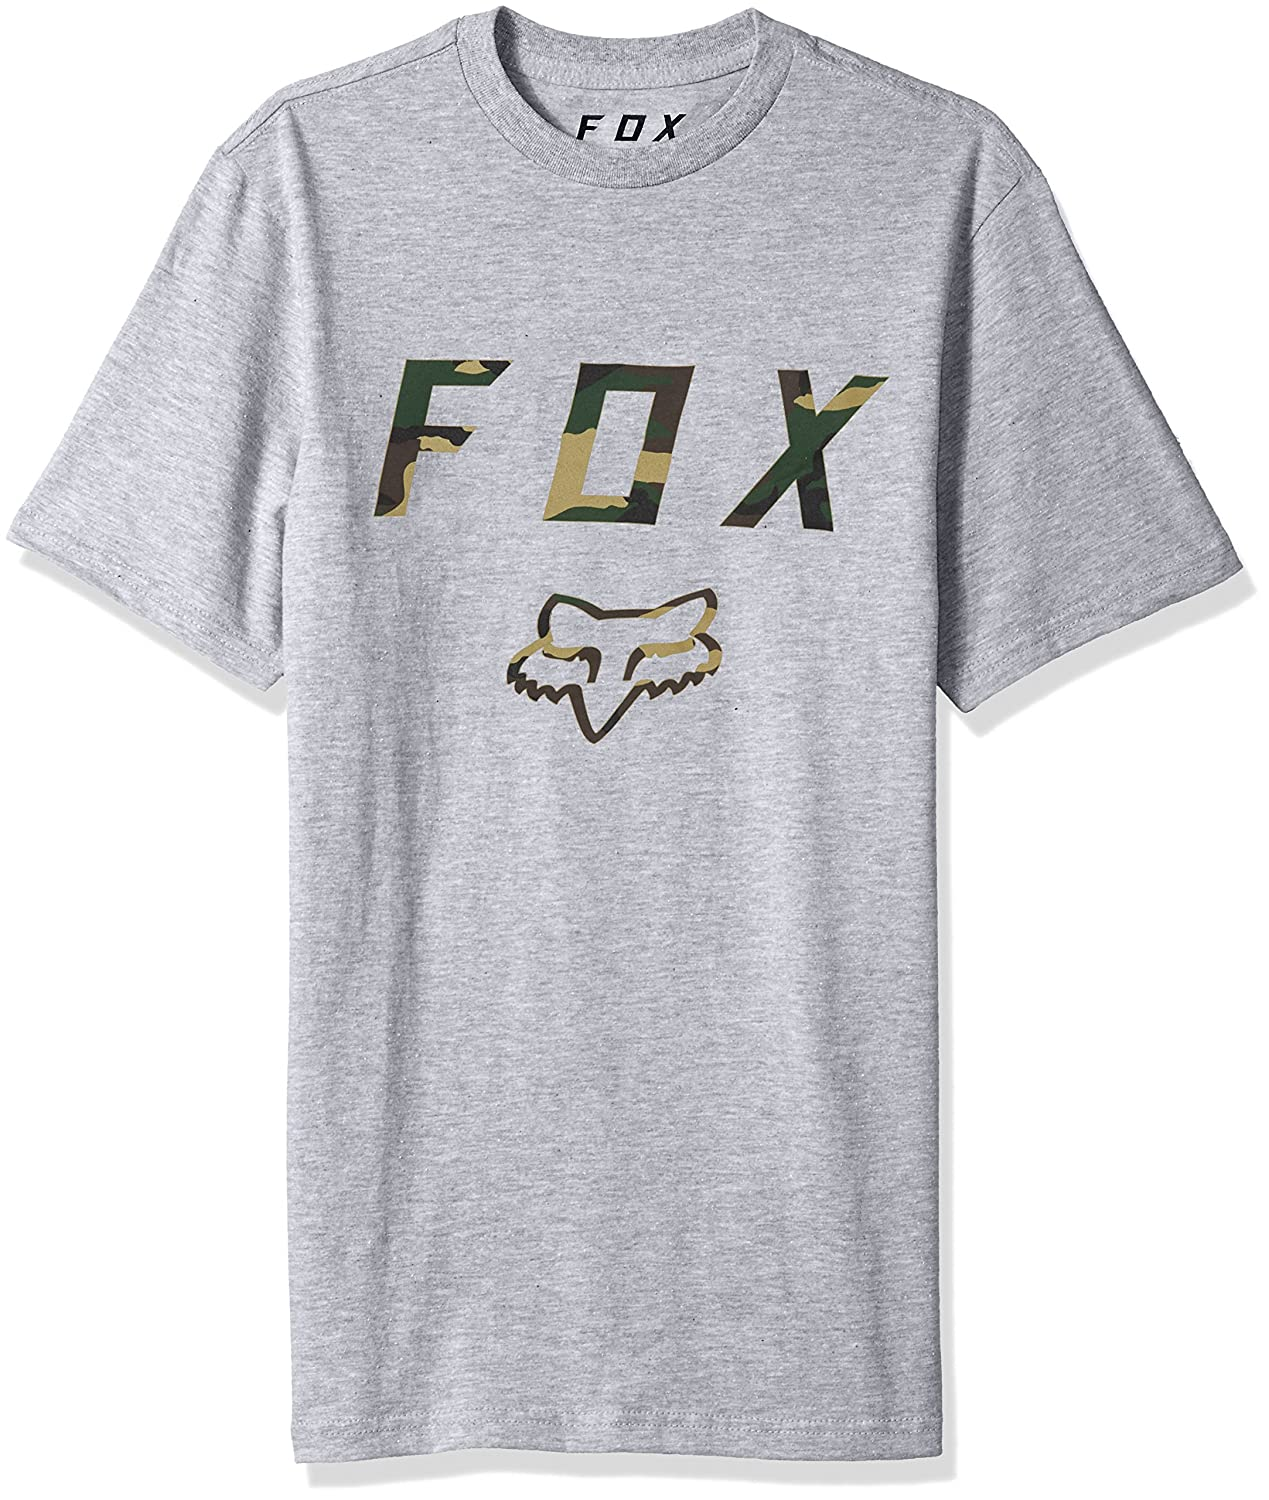 Fox Men's cyanide Squad Short Sleeve Tee free shipping